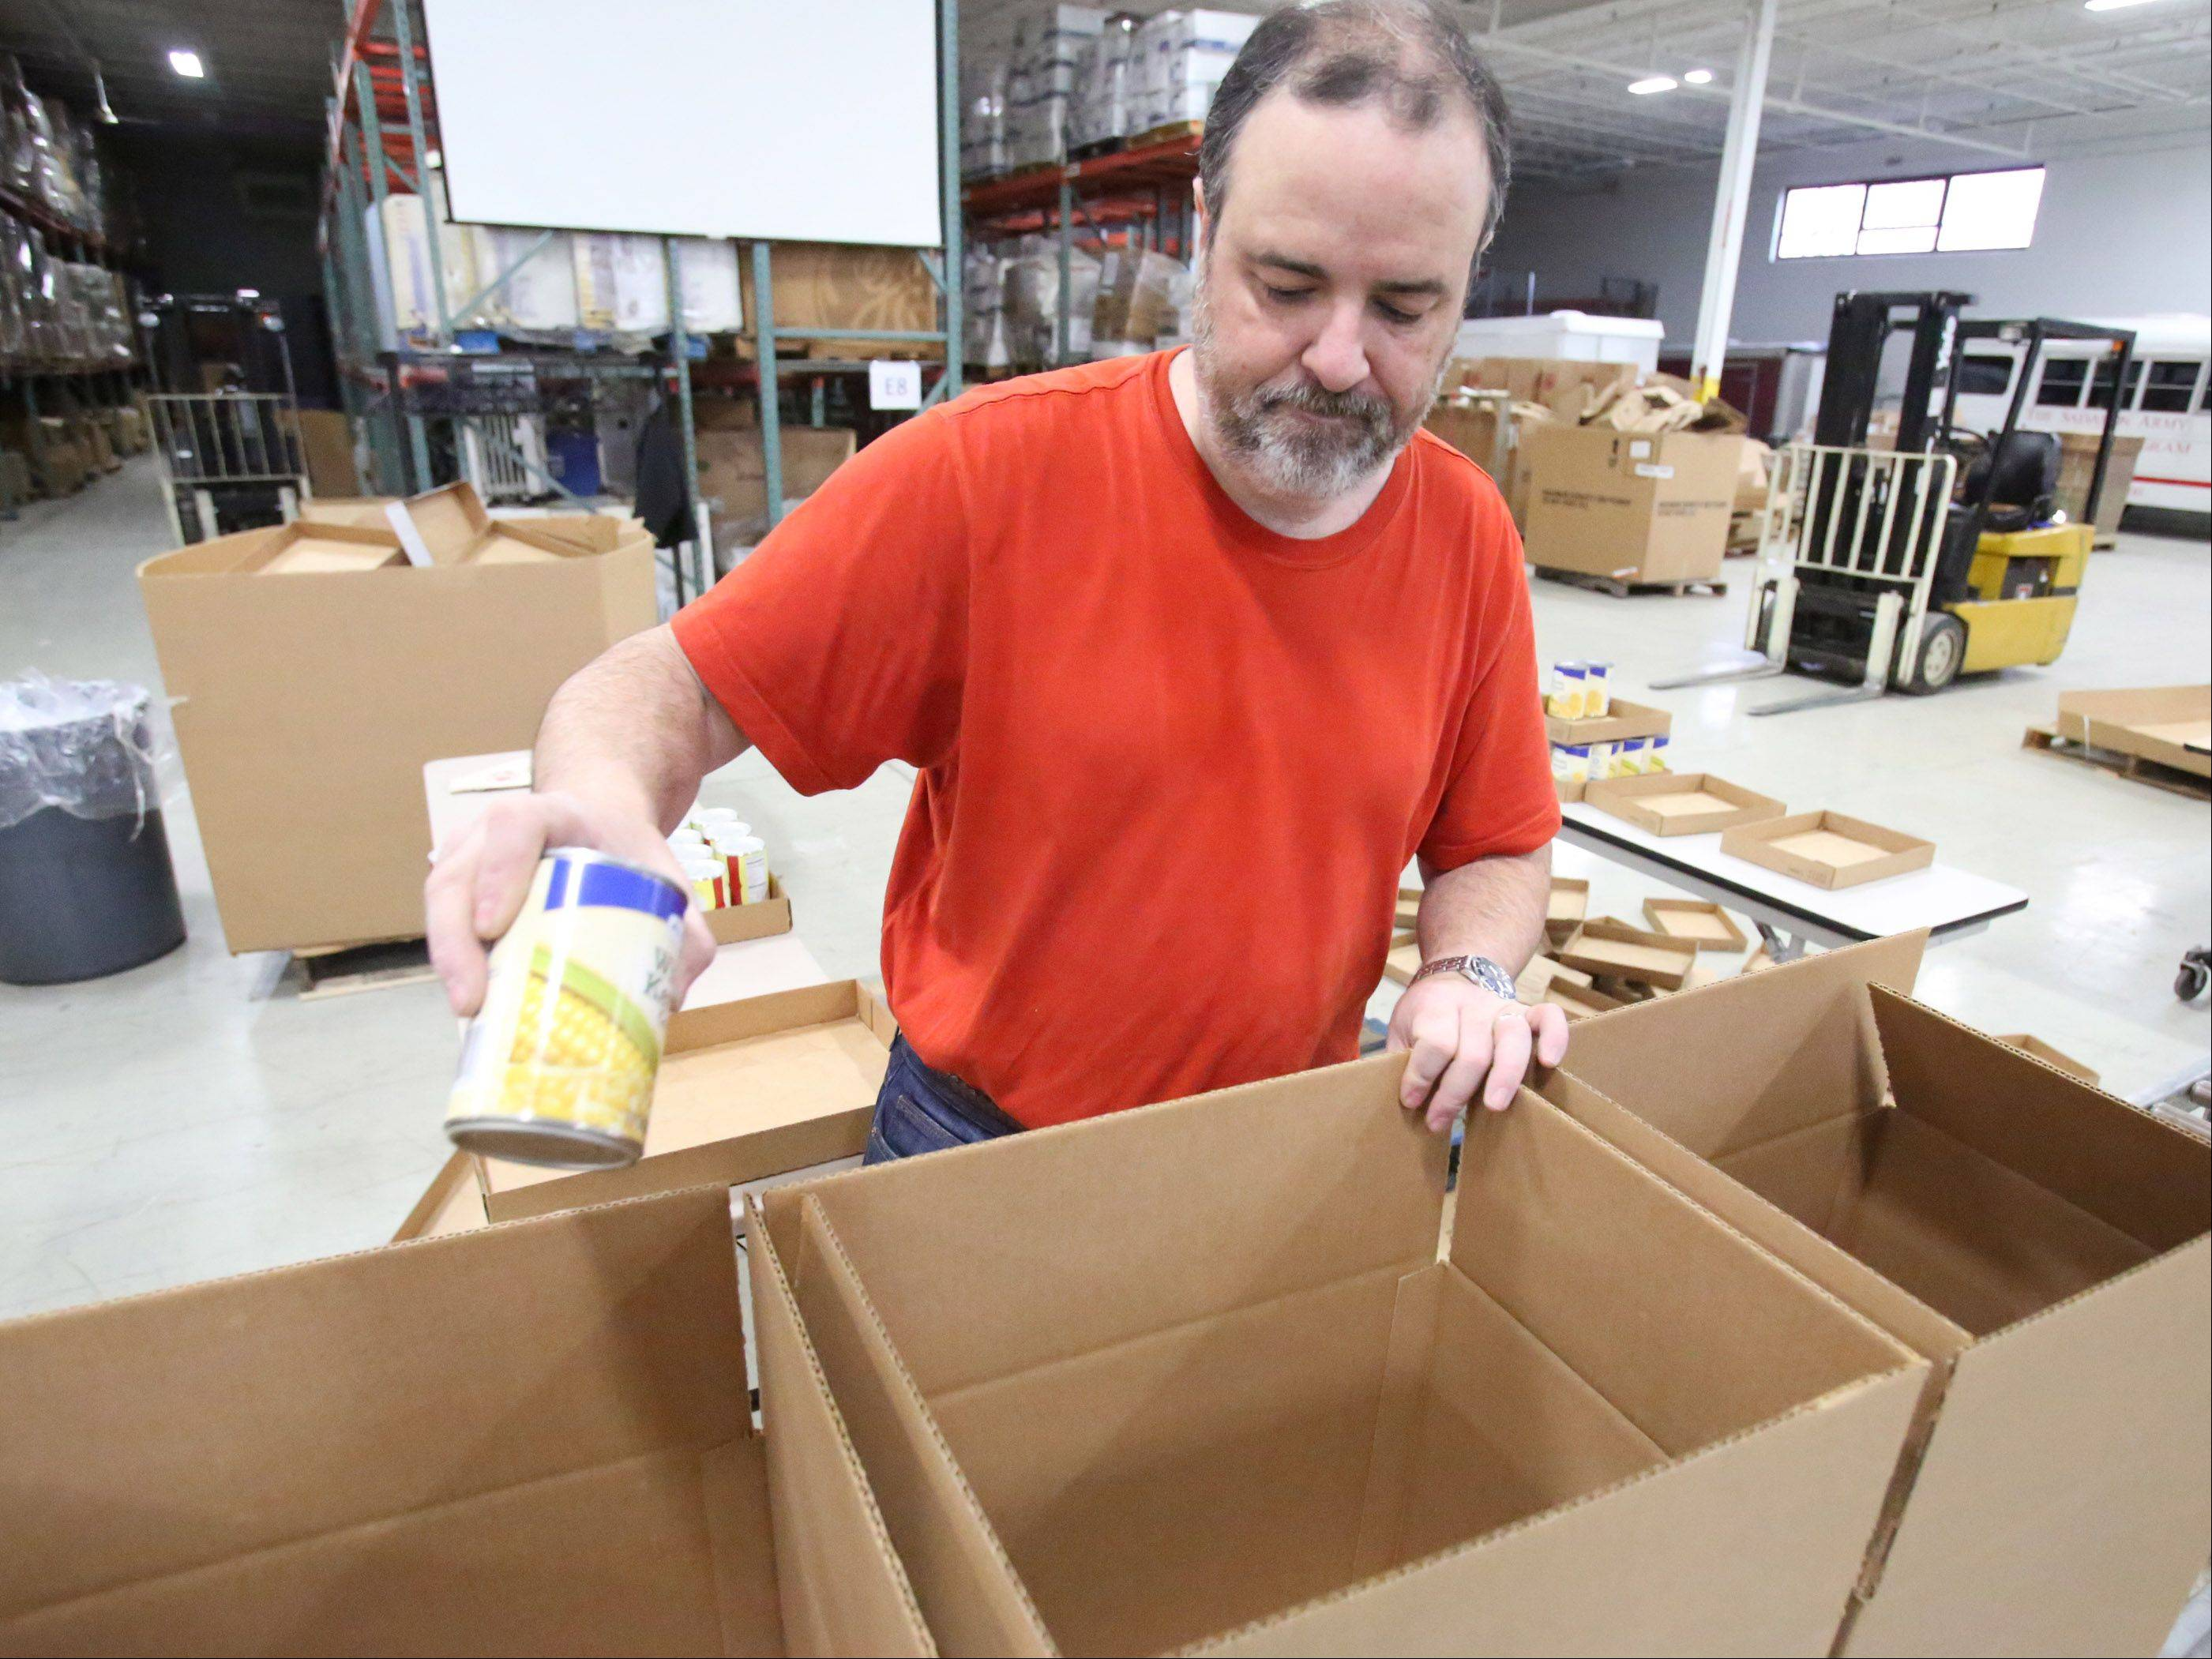 Volunteer Bob Dolan of Hinsdale, who works for Sprint in the Schaumburg area, packs canned vegetables into food boxes Wednesday as part of an effort to prepare more than 10,000 Christmas Christmas food boxes containing fresh potatoes, corn, green beans, cranberry sauce, yams, gravy and stuffing at the Salvation Army's Disaster Services Headquarters in Elk Grove Village.